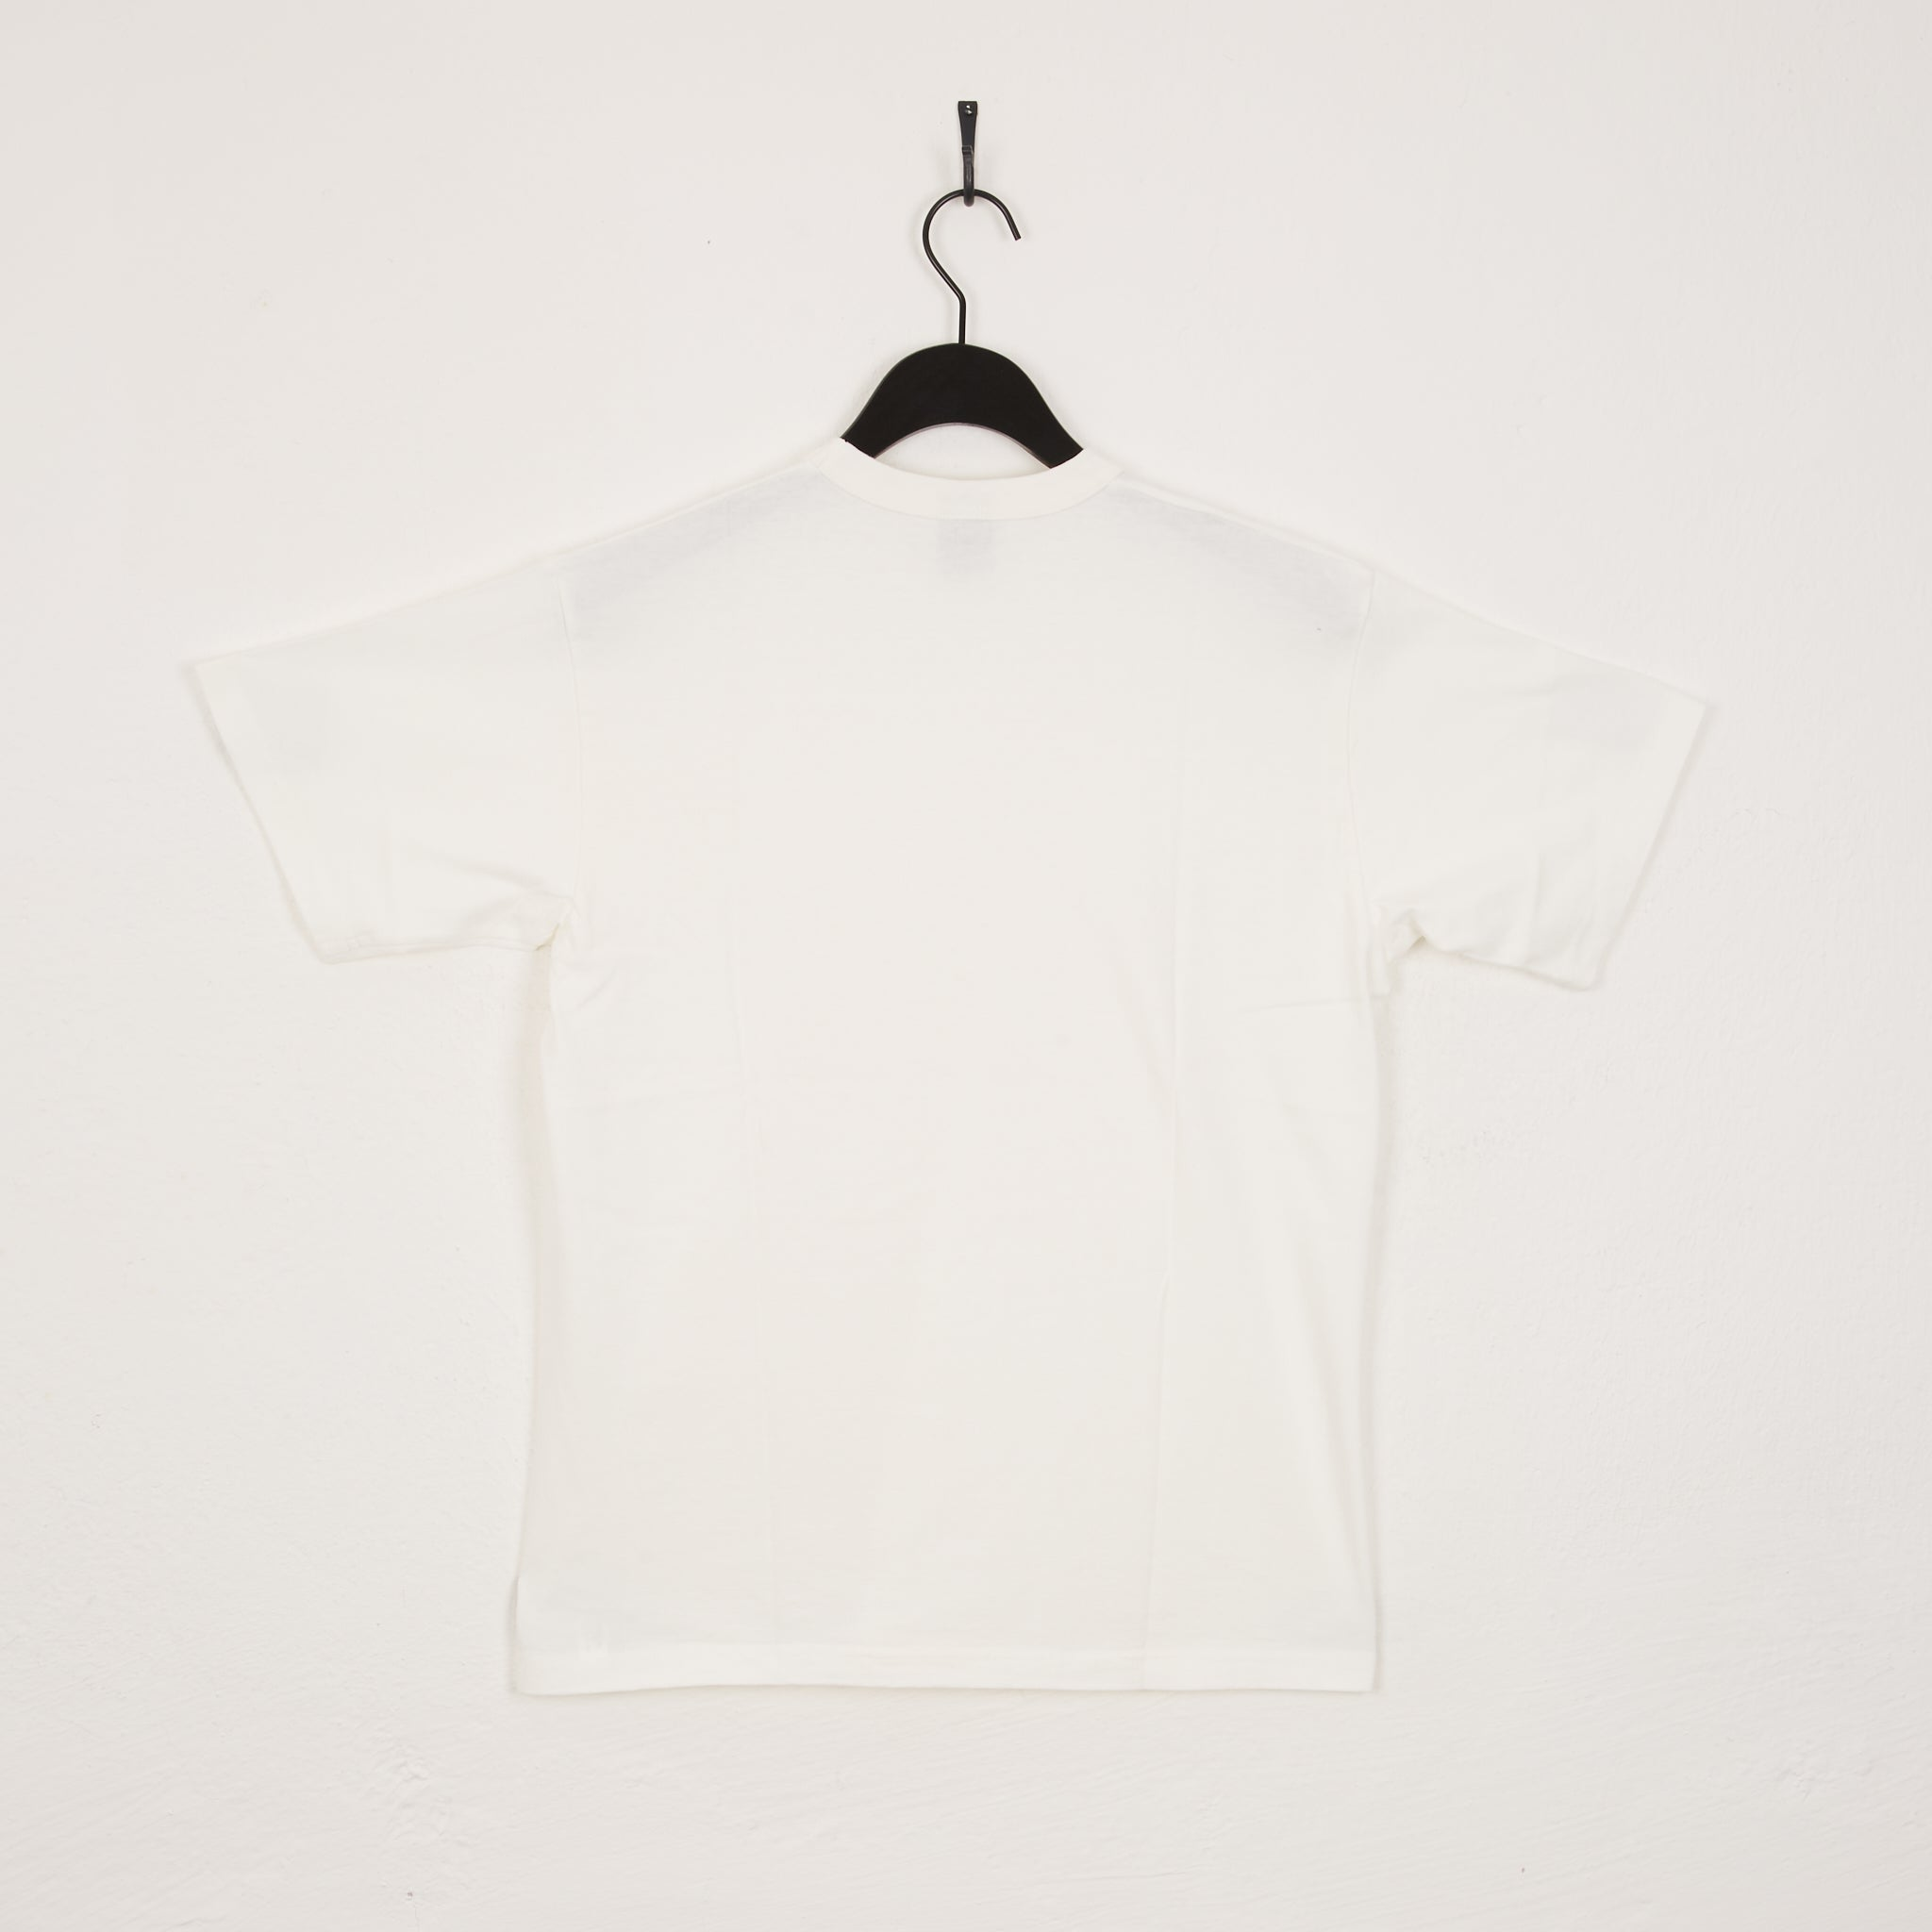 IHT-1610 - 6.5oz Loopwheel Crew Neck T-Shirt White